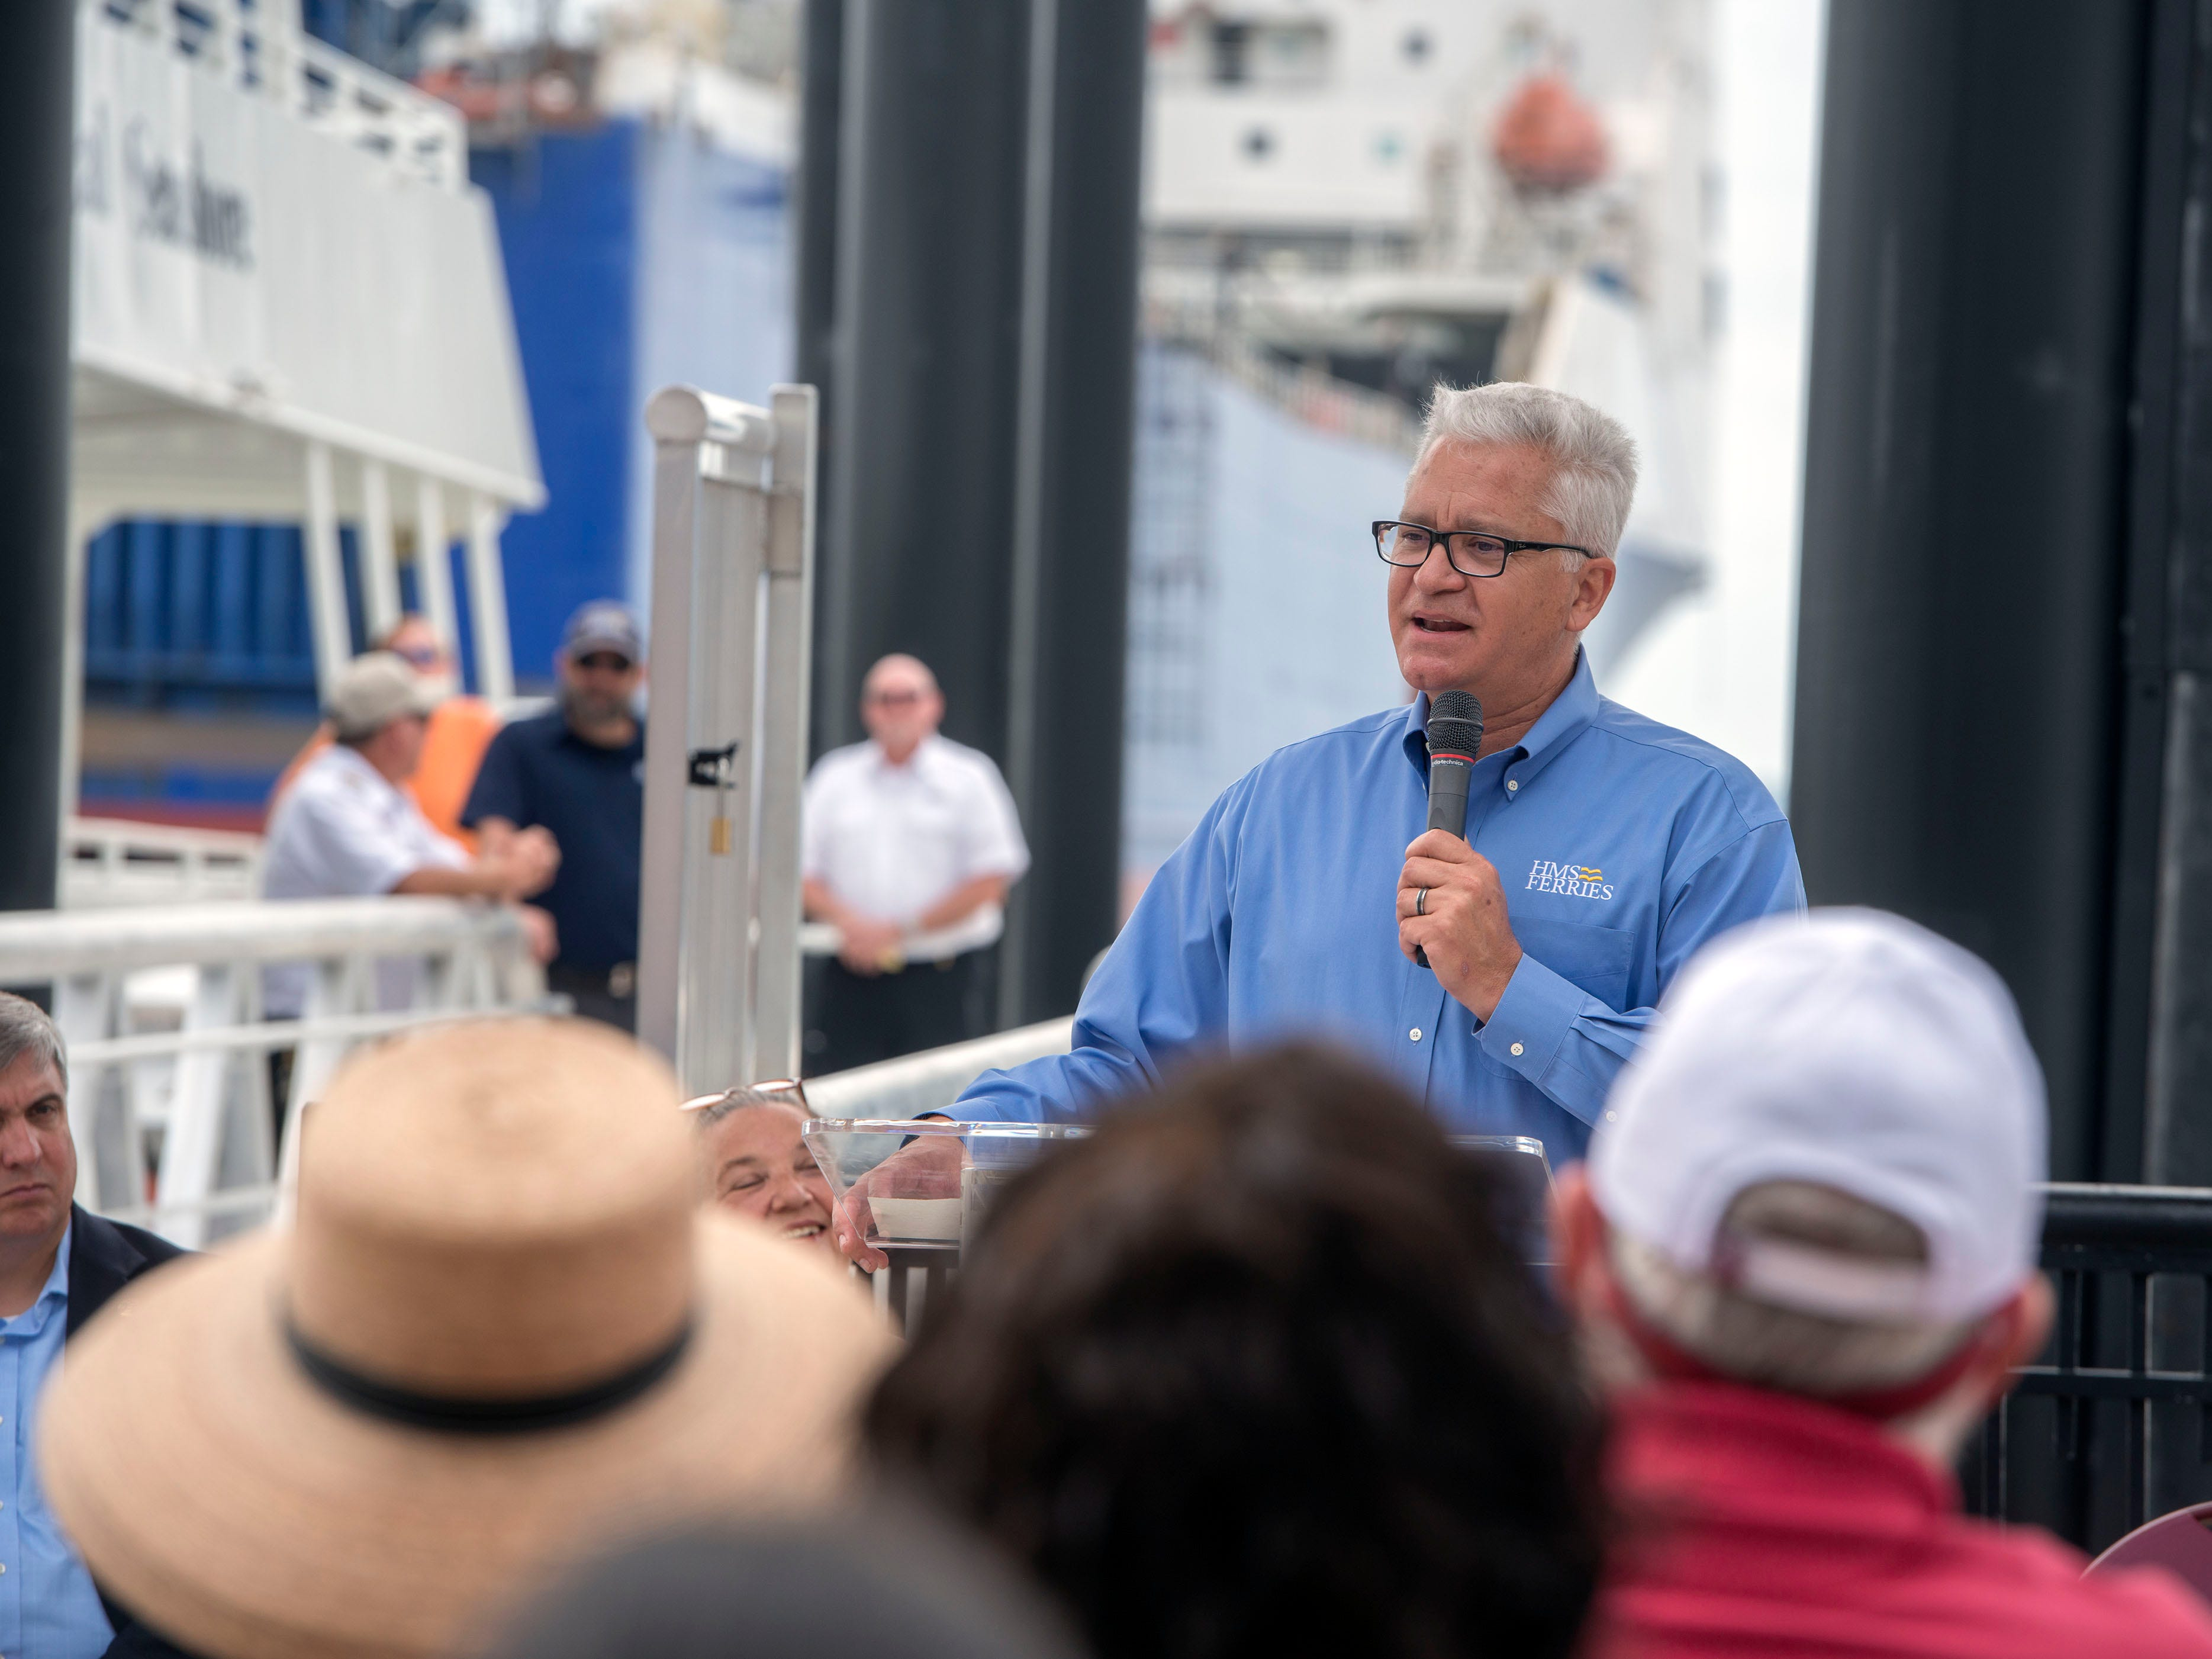 Joe Asebedo, general manager of HMS Ferries, speaks during the City of Pensacola's Ferry Terminal Building Grand Opening and ribbon cutting Saturday, April 13, 2019.